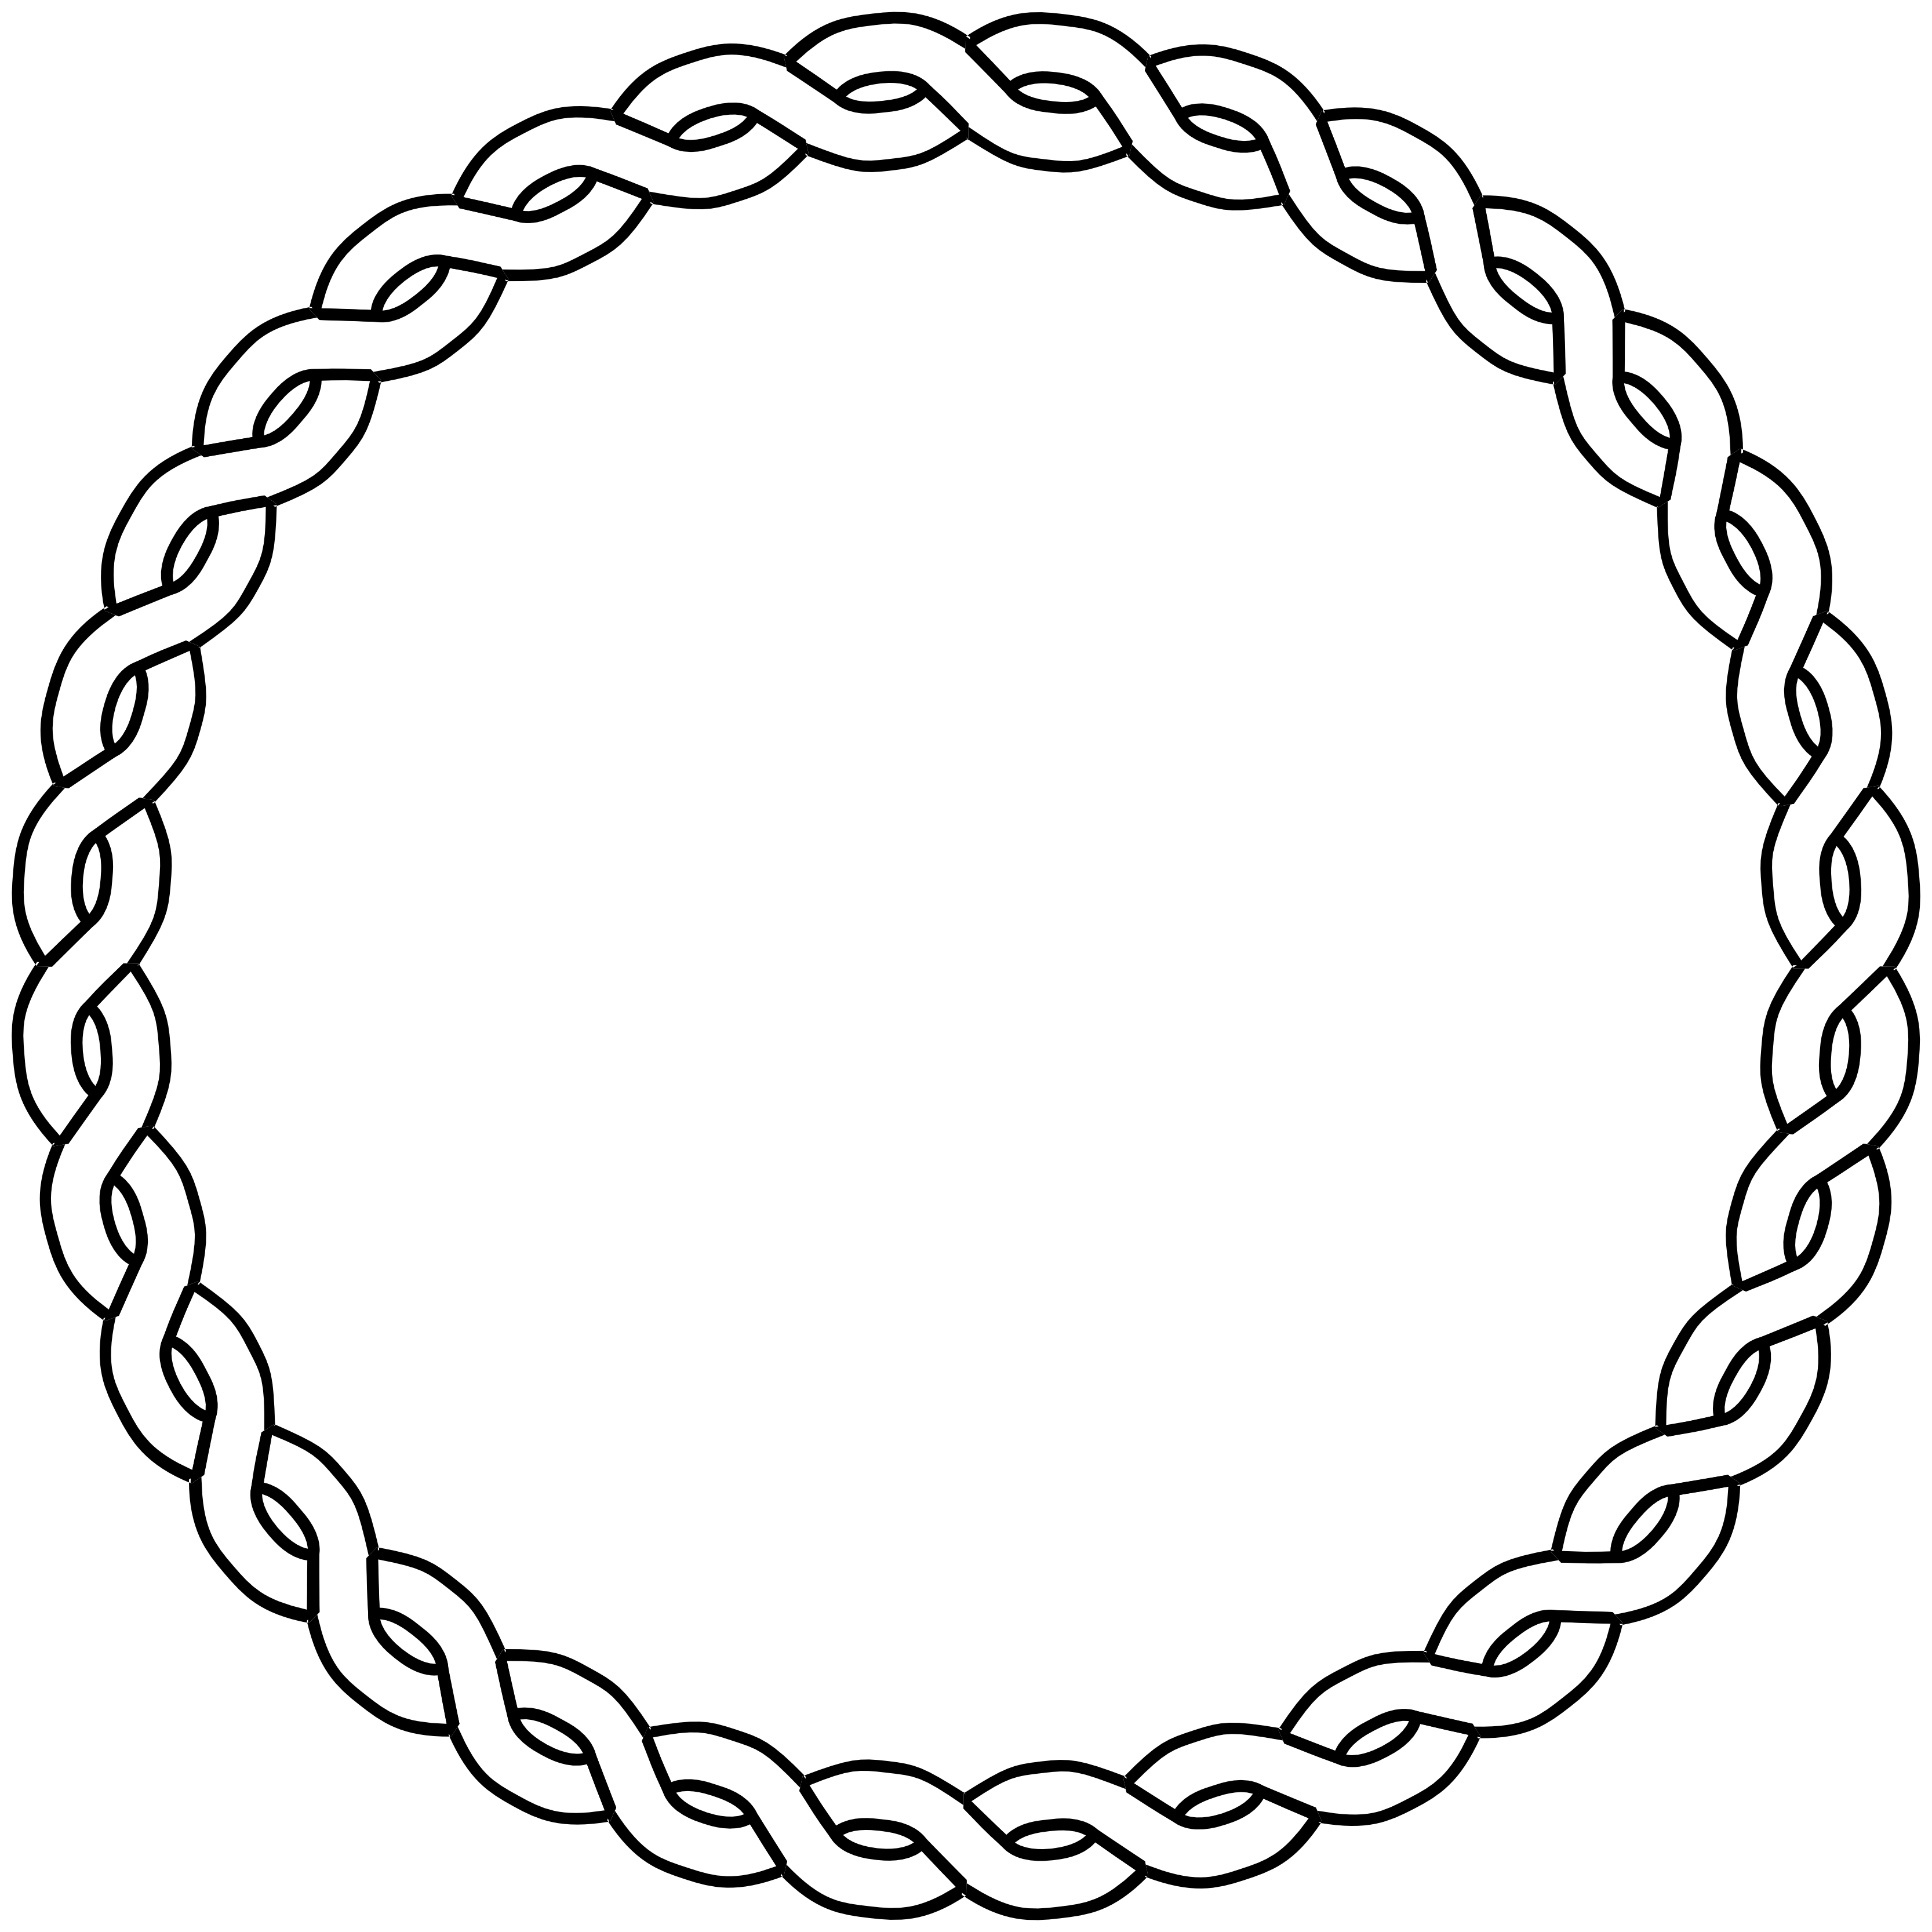 clipart rope border circle - photo #14